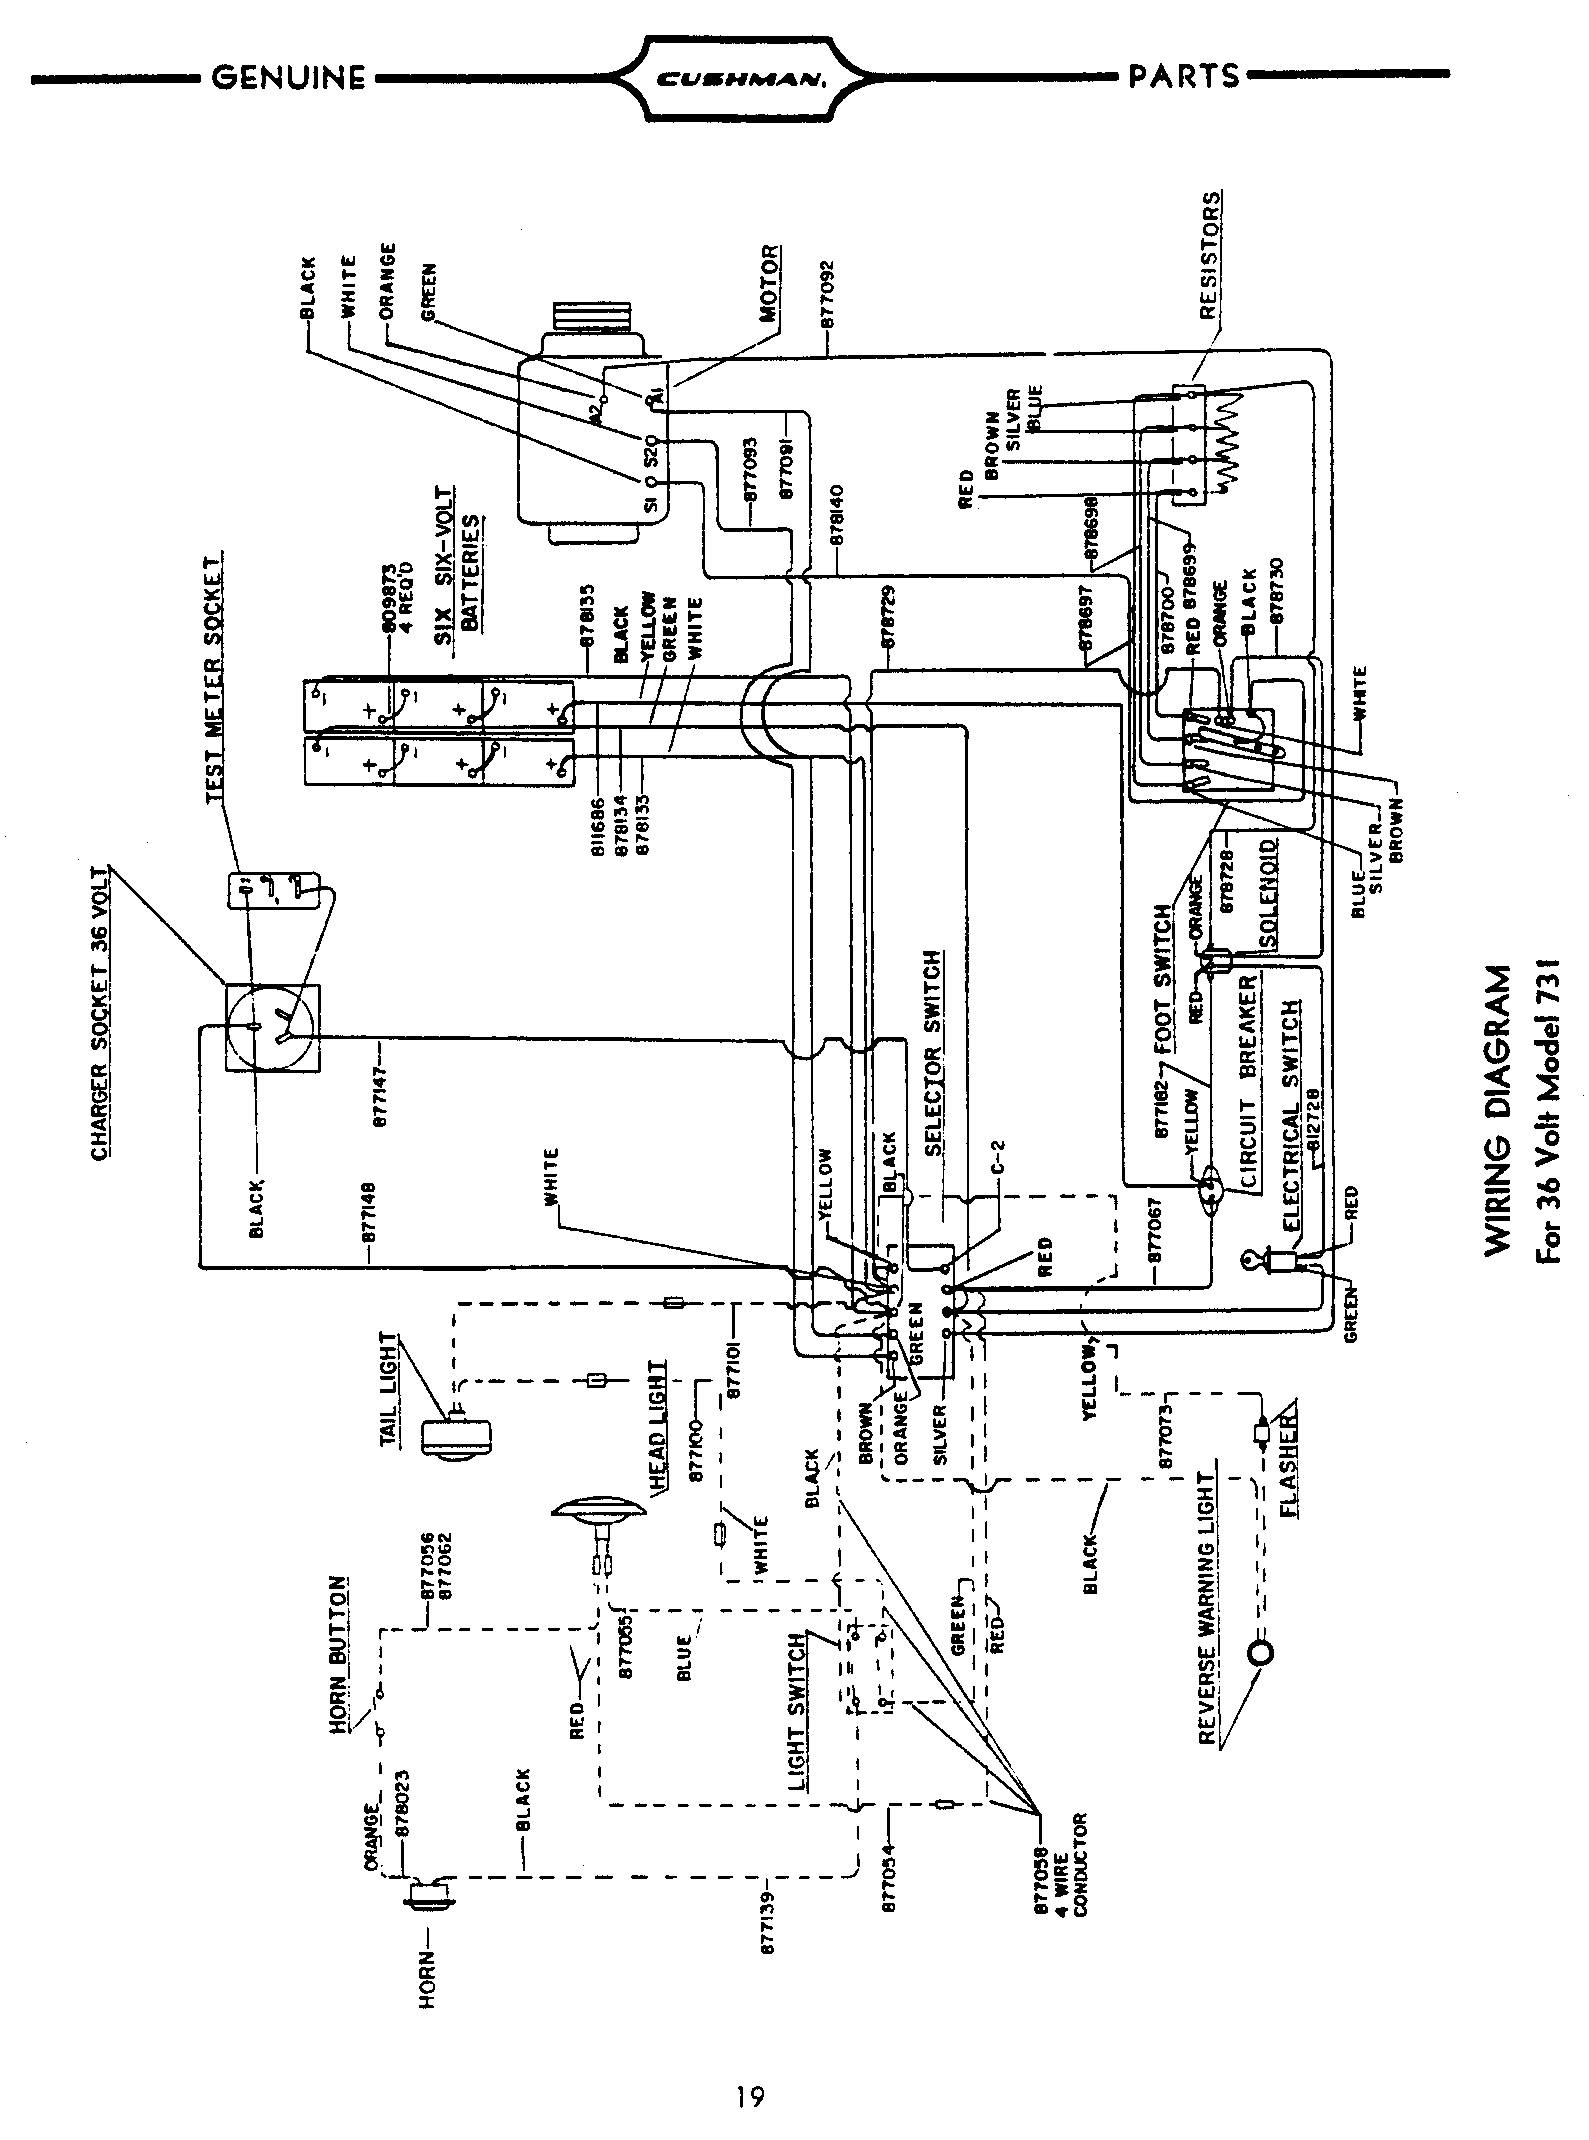 PU300Page19 ezgo golf cart wiring diagram wiring diagram for ez go 36volt battery wiring diagram for 36 volt golf cart at bayanpartner.co